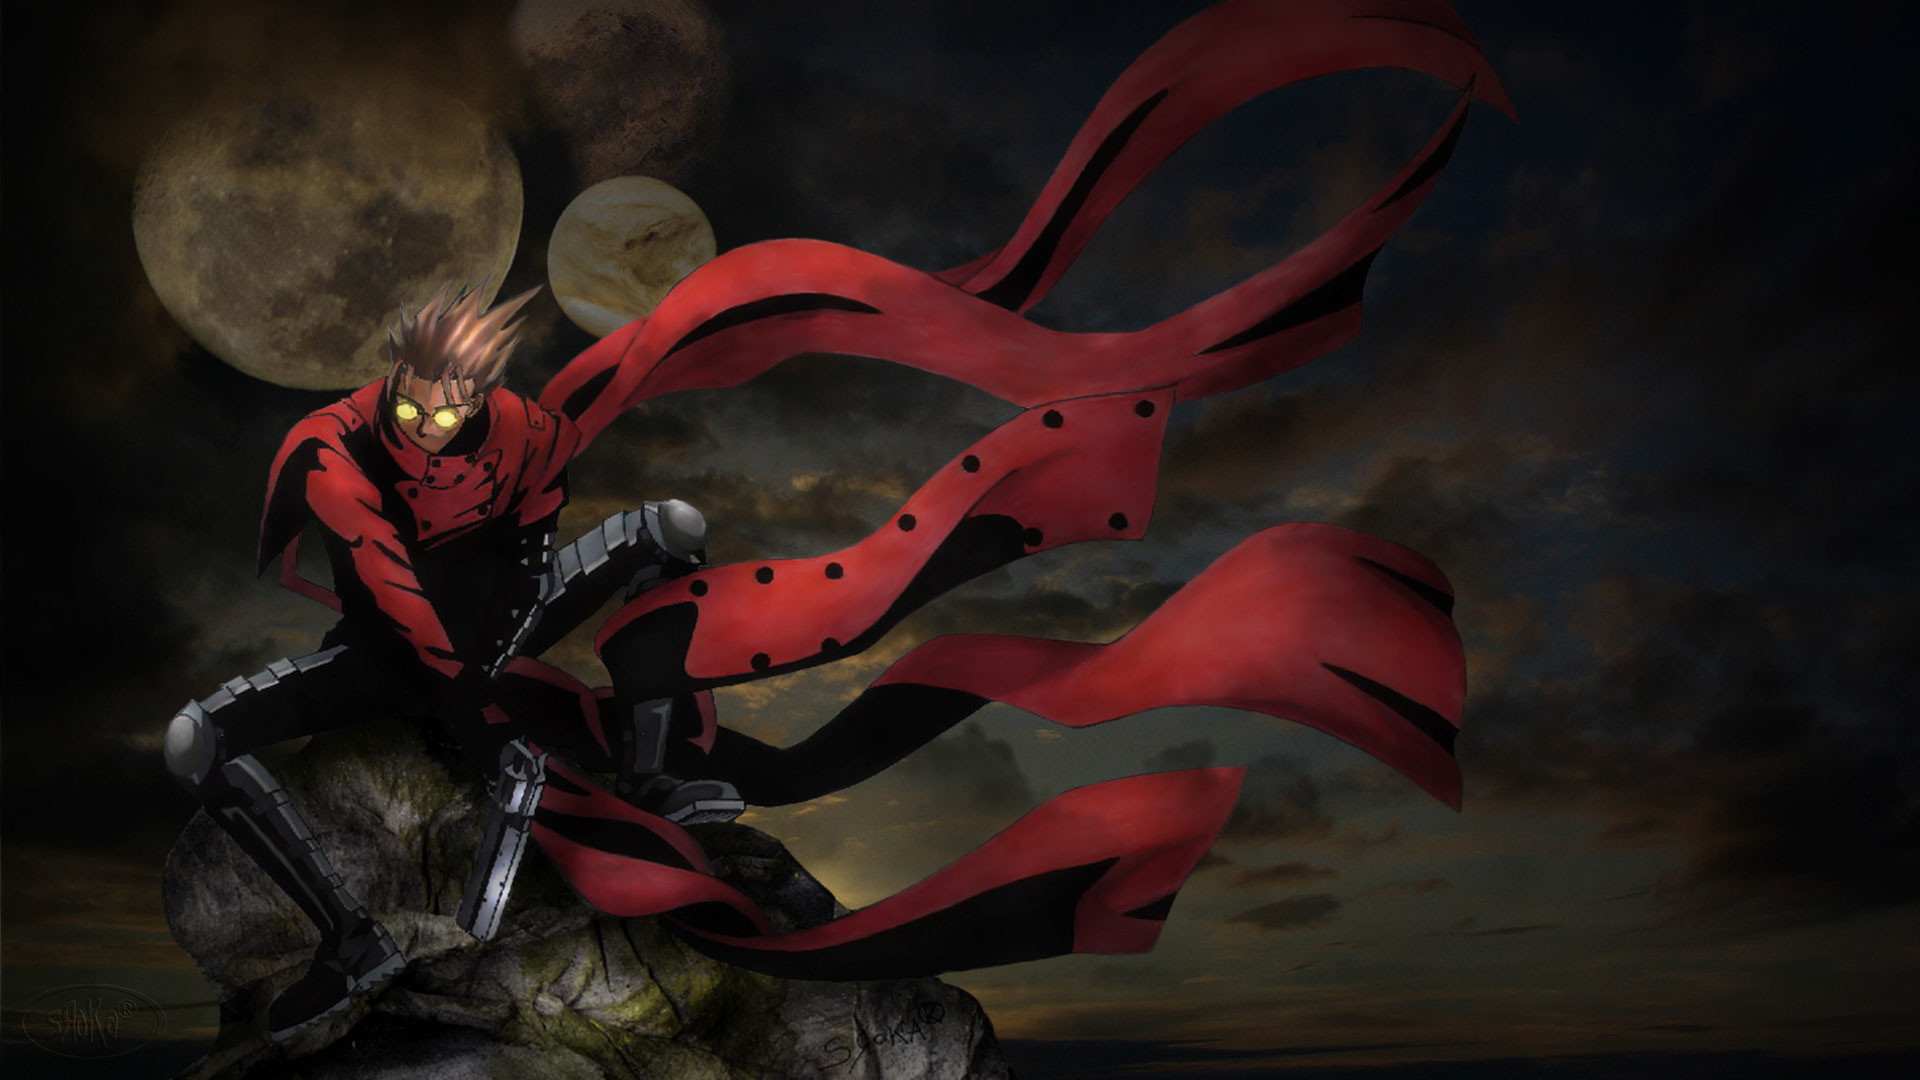 Res: 1920x1080, Trigun 1980x1080 by srokaML Trigun 1980x1080 by srokaML